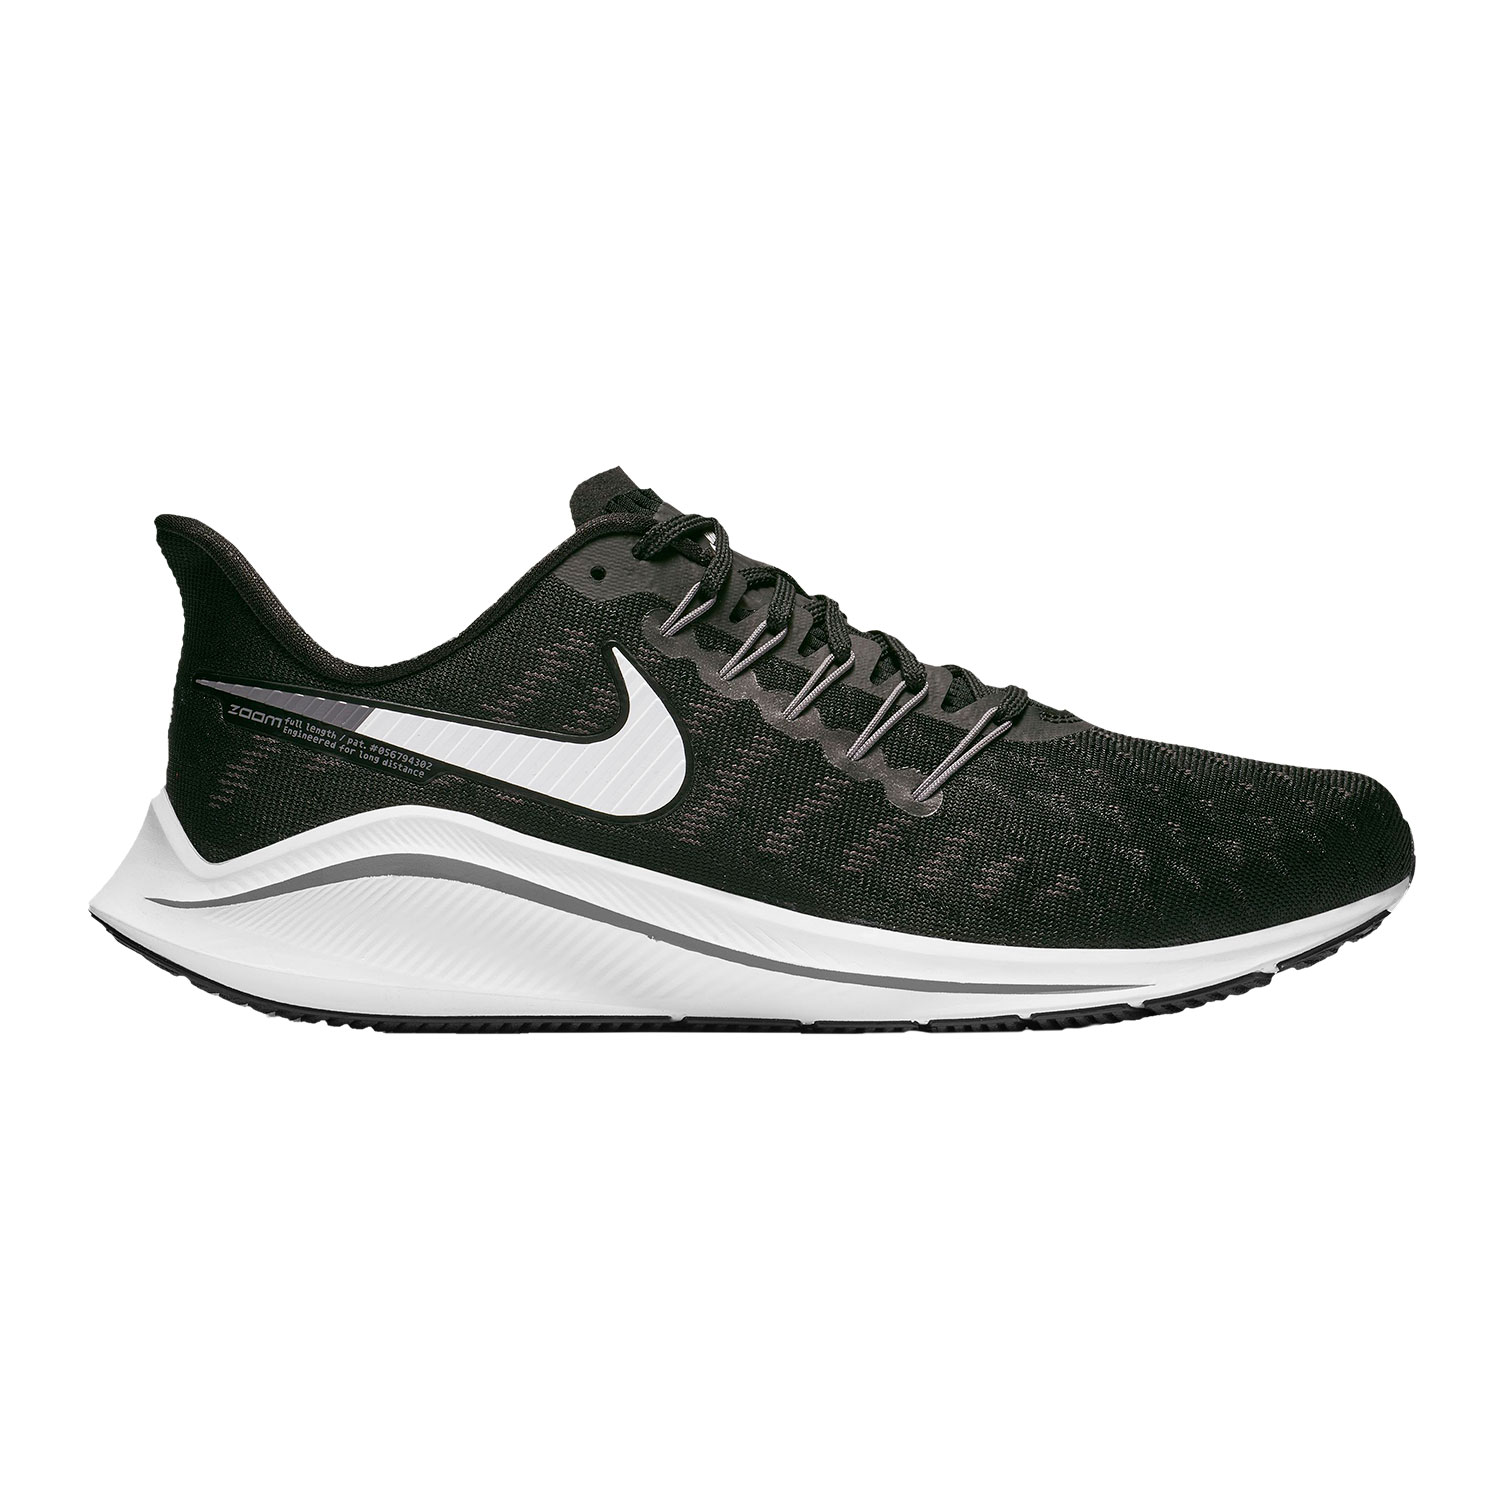 Nike Air Zoom Vomero 14 4E - Black/White/Thunder Grey